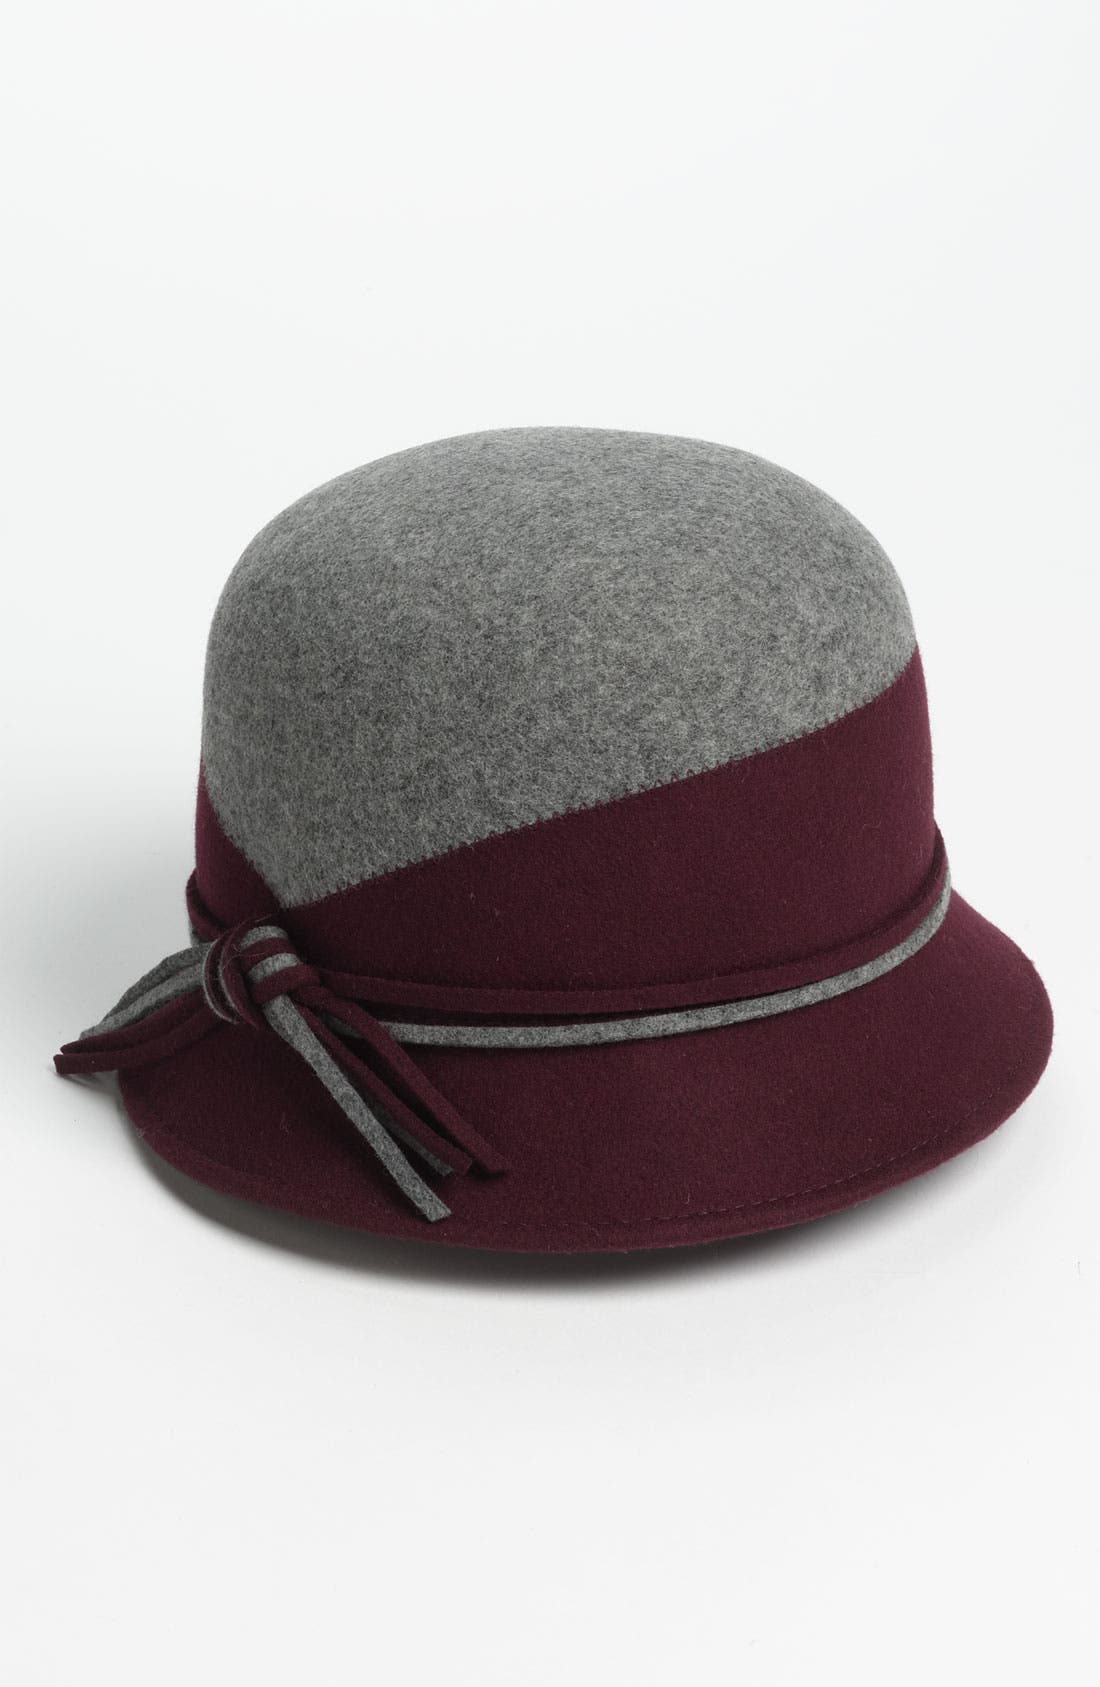 Alternate Image 1 Selected - Nordstrom Two Tone Wool Cloche